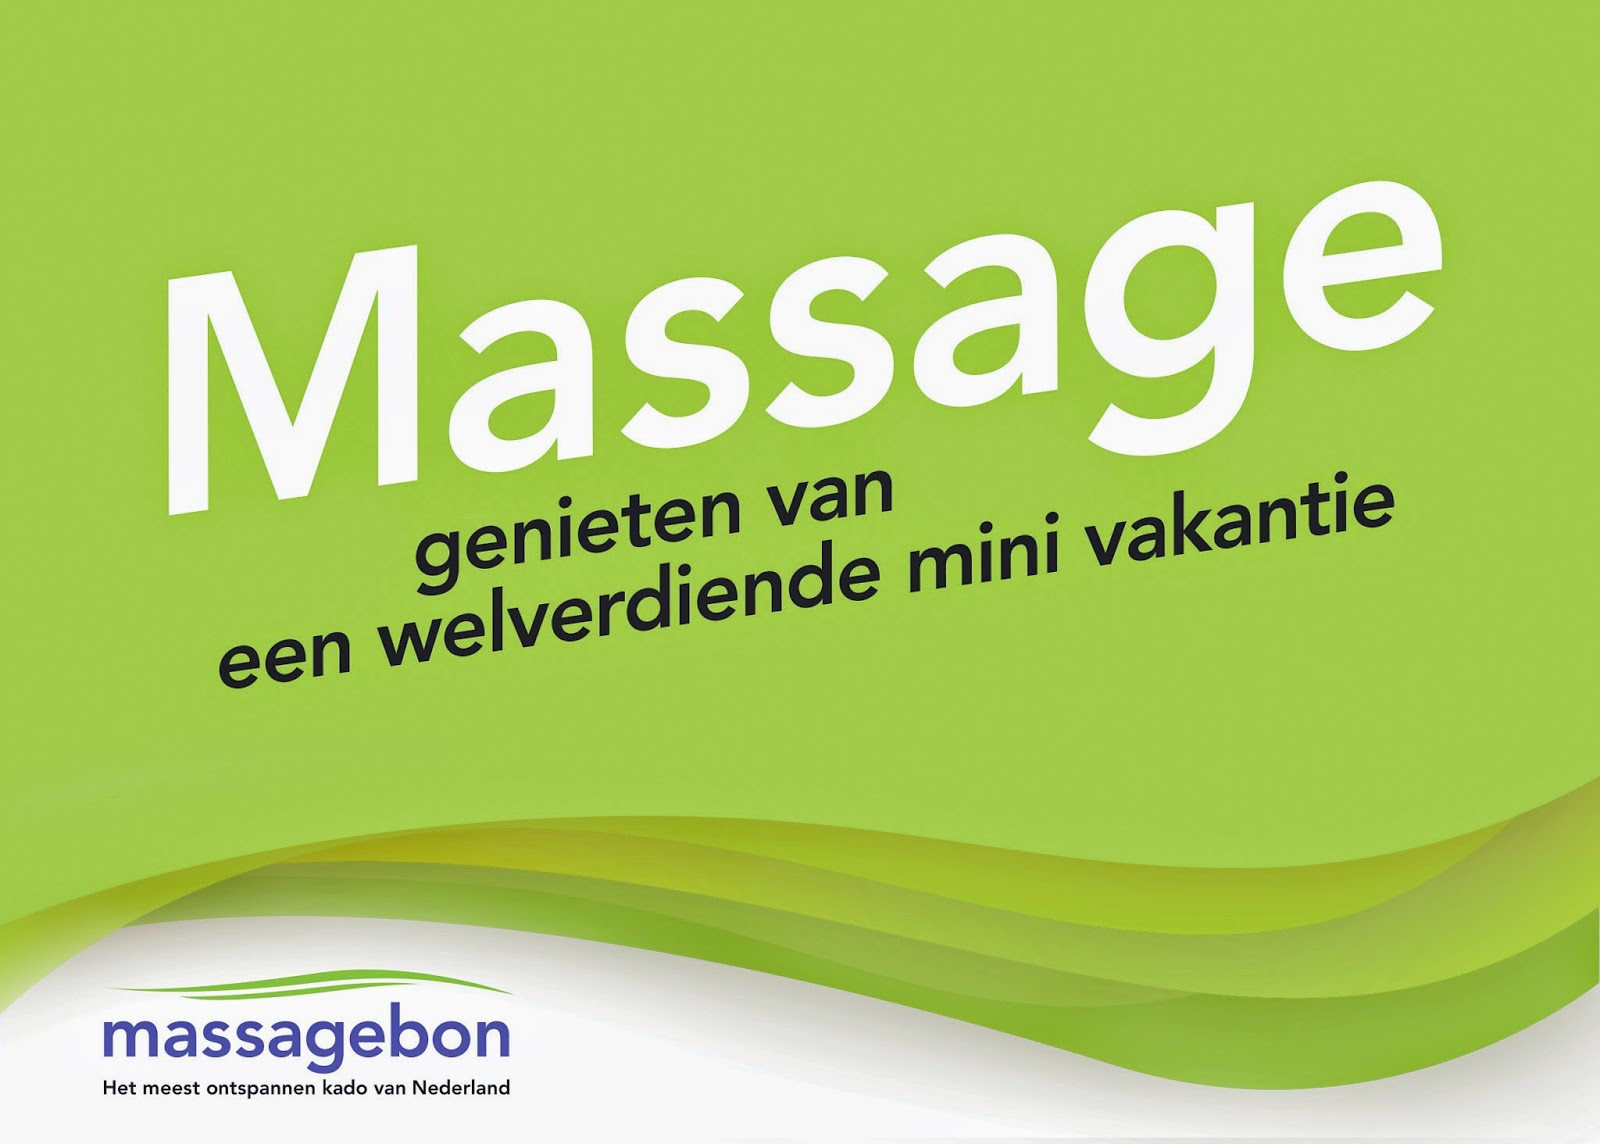 Massage e-book gratis bij een massagebon